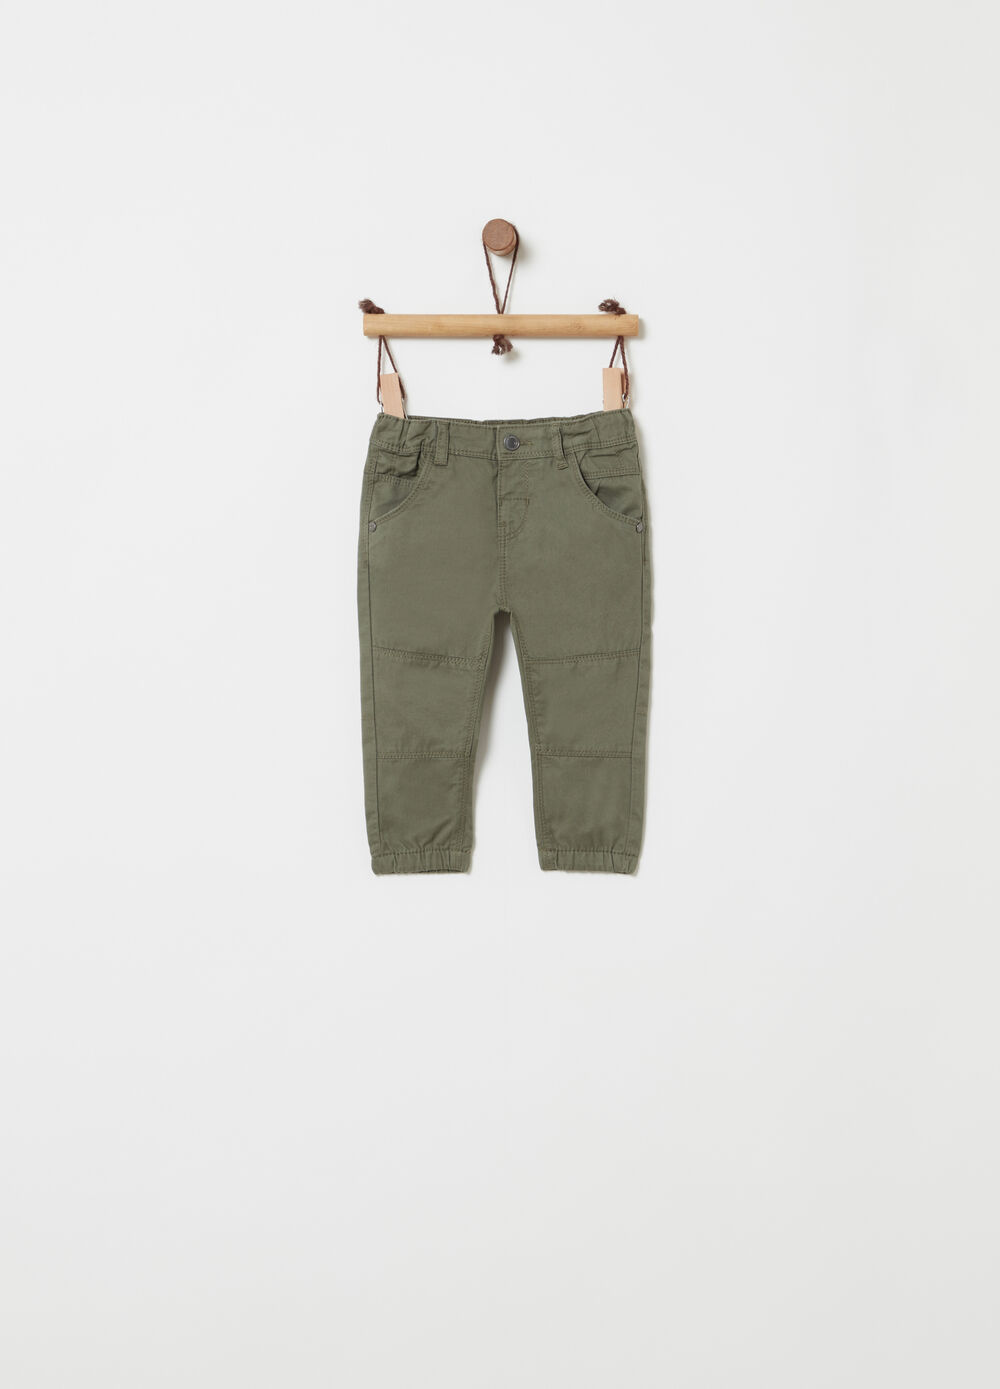 100% cotton twill stretch trousers